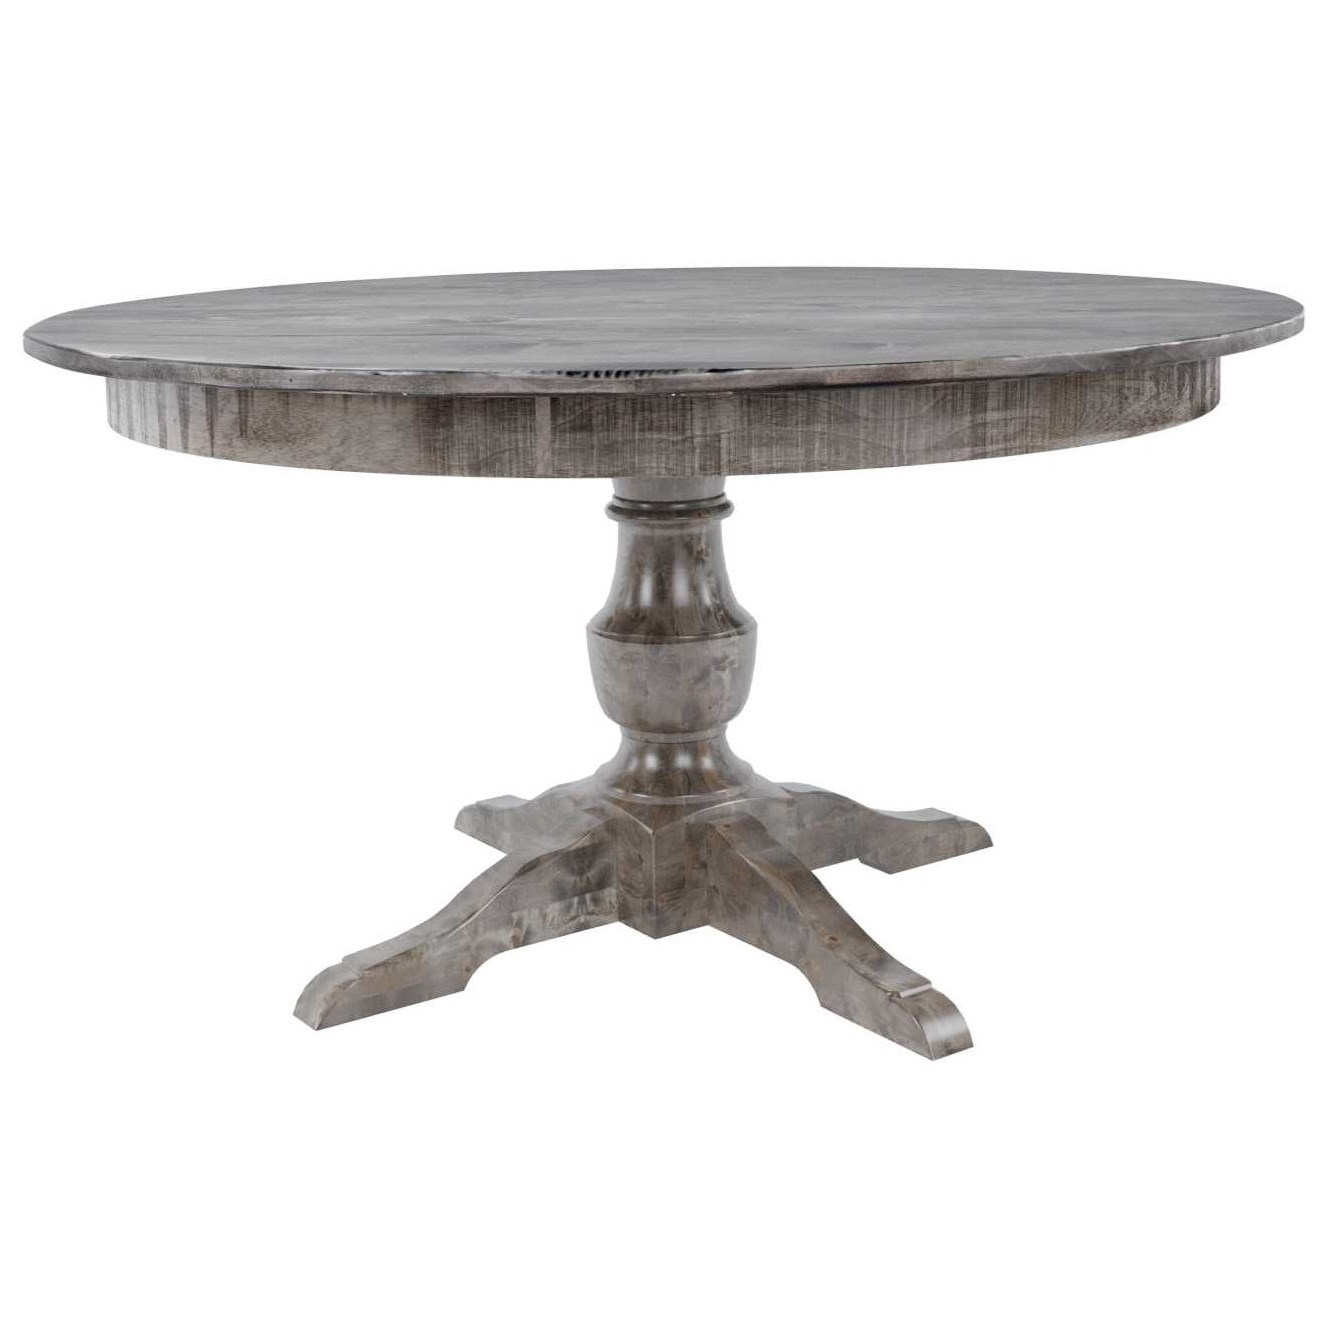 "Champlain - Custom Dining Customizable 54"" Round Wood Solid Top Table by Canadel at Gill Brothers Furniture"